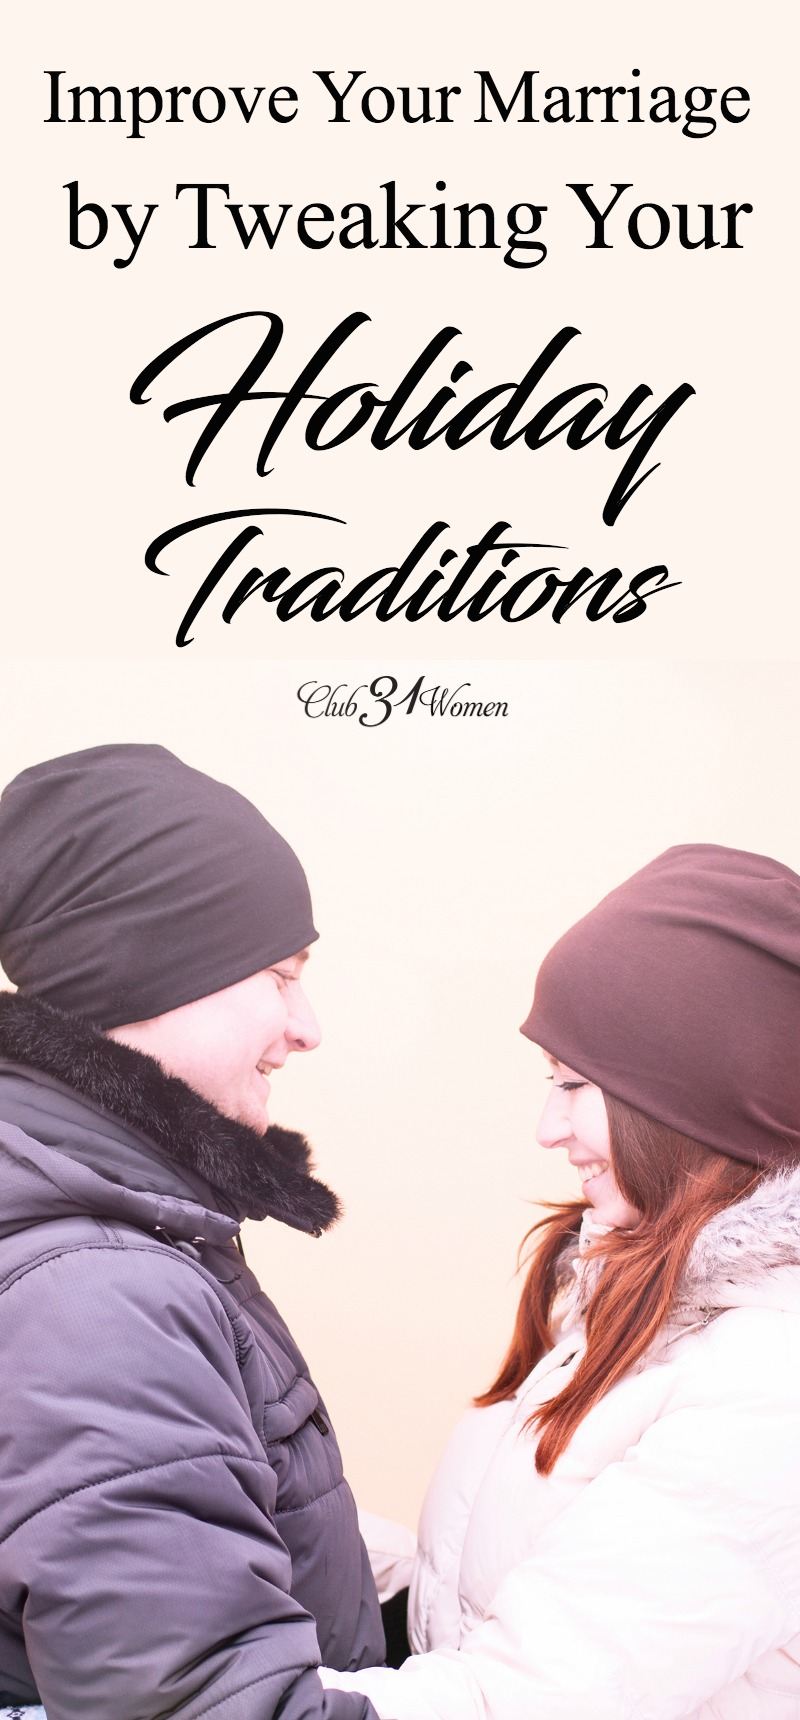 Something as simple as bending your special holiday traditions a bit can bring much joy and peace to your marriage and holidays. via @Club31Women